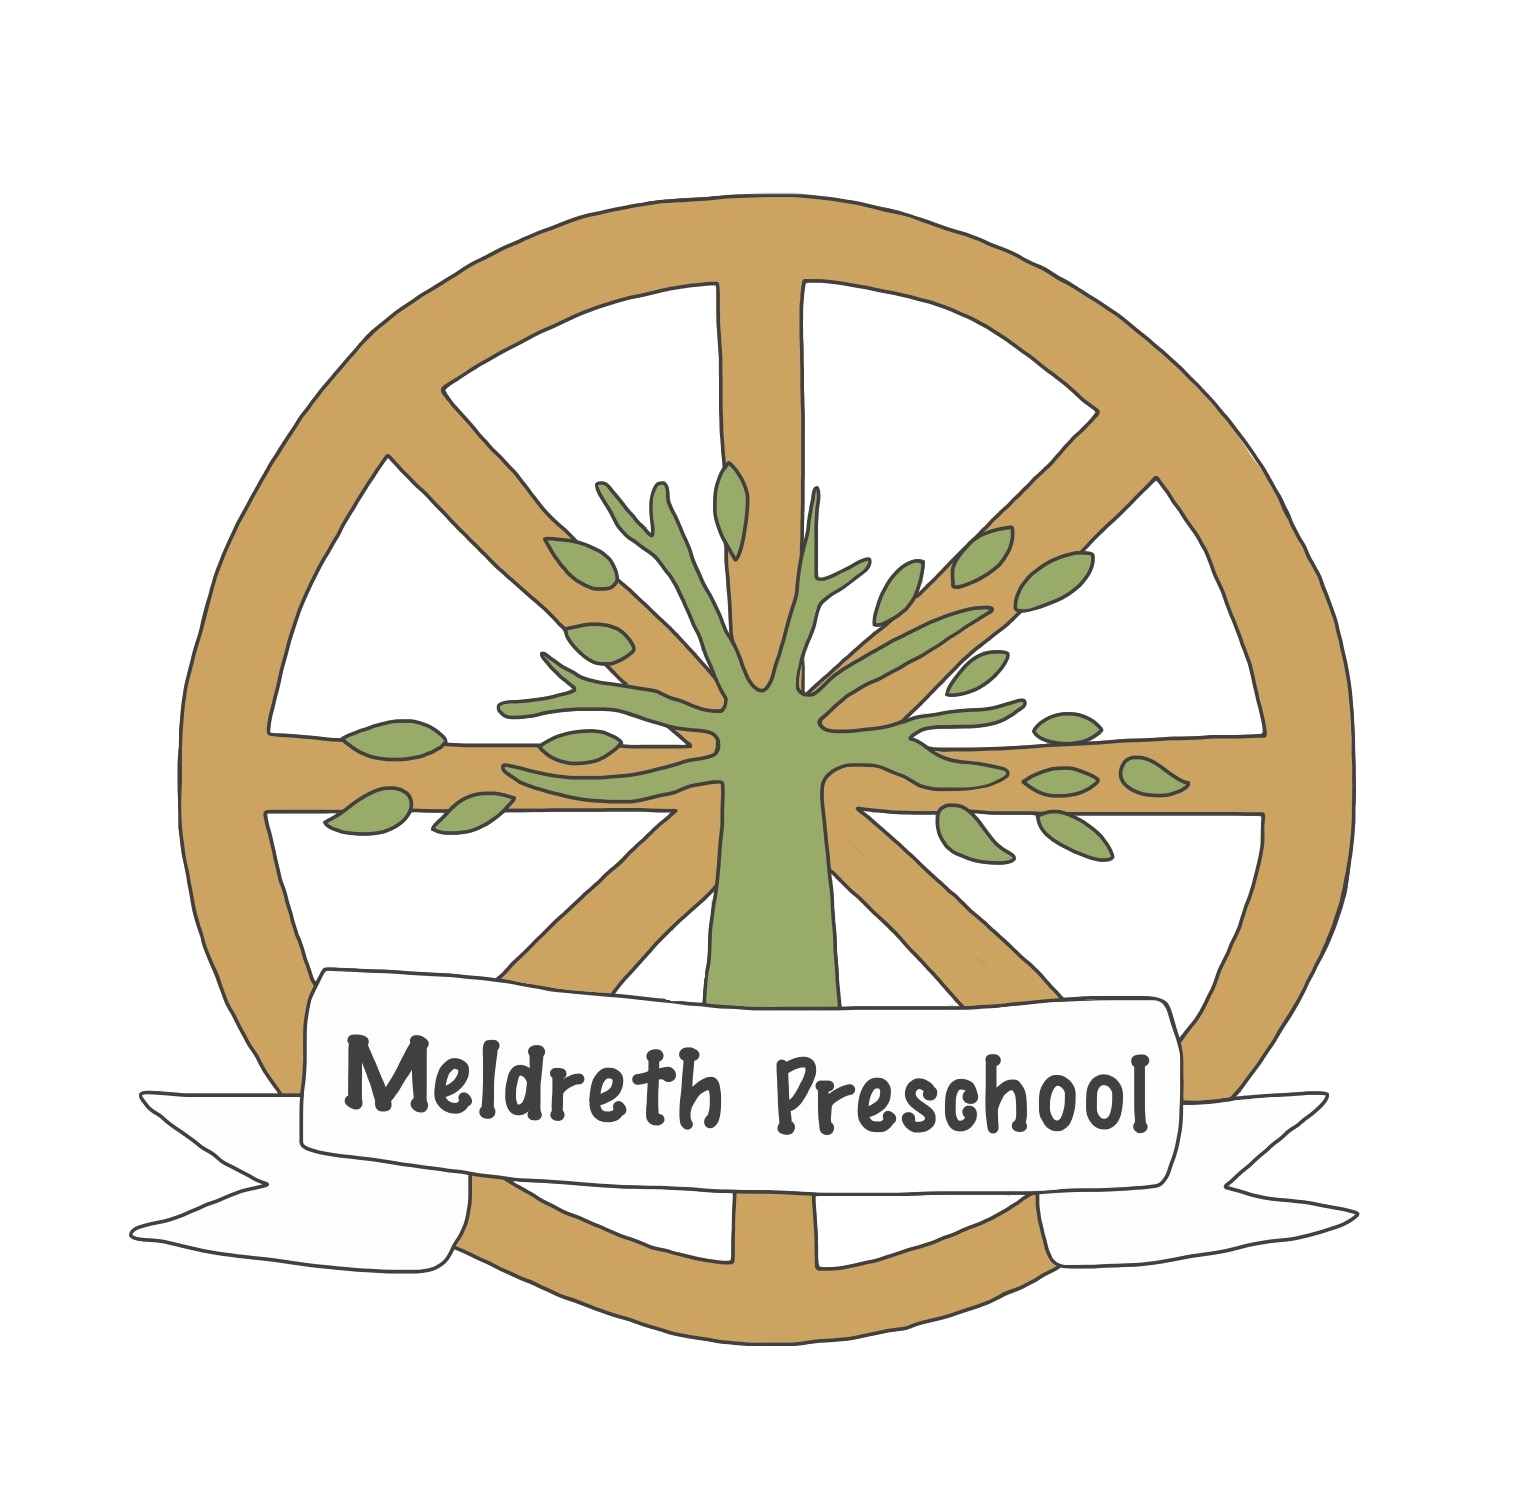 Meldreth Preschool